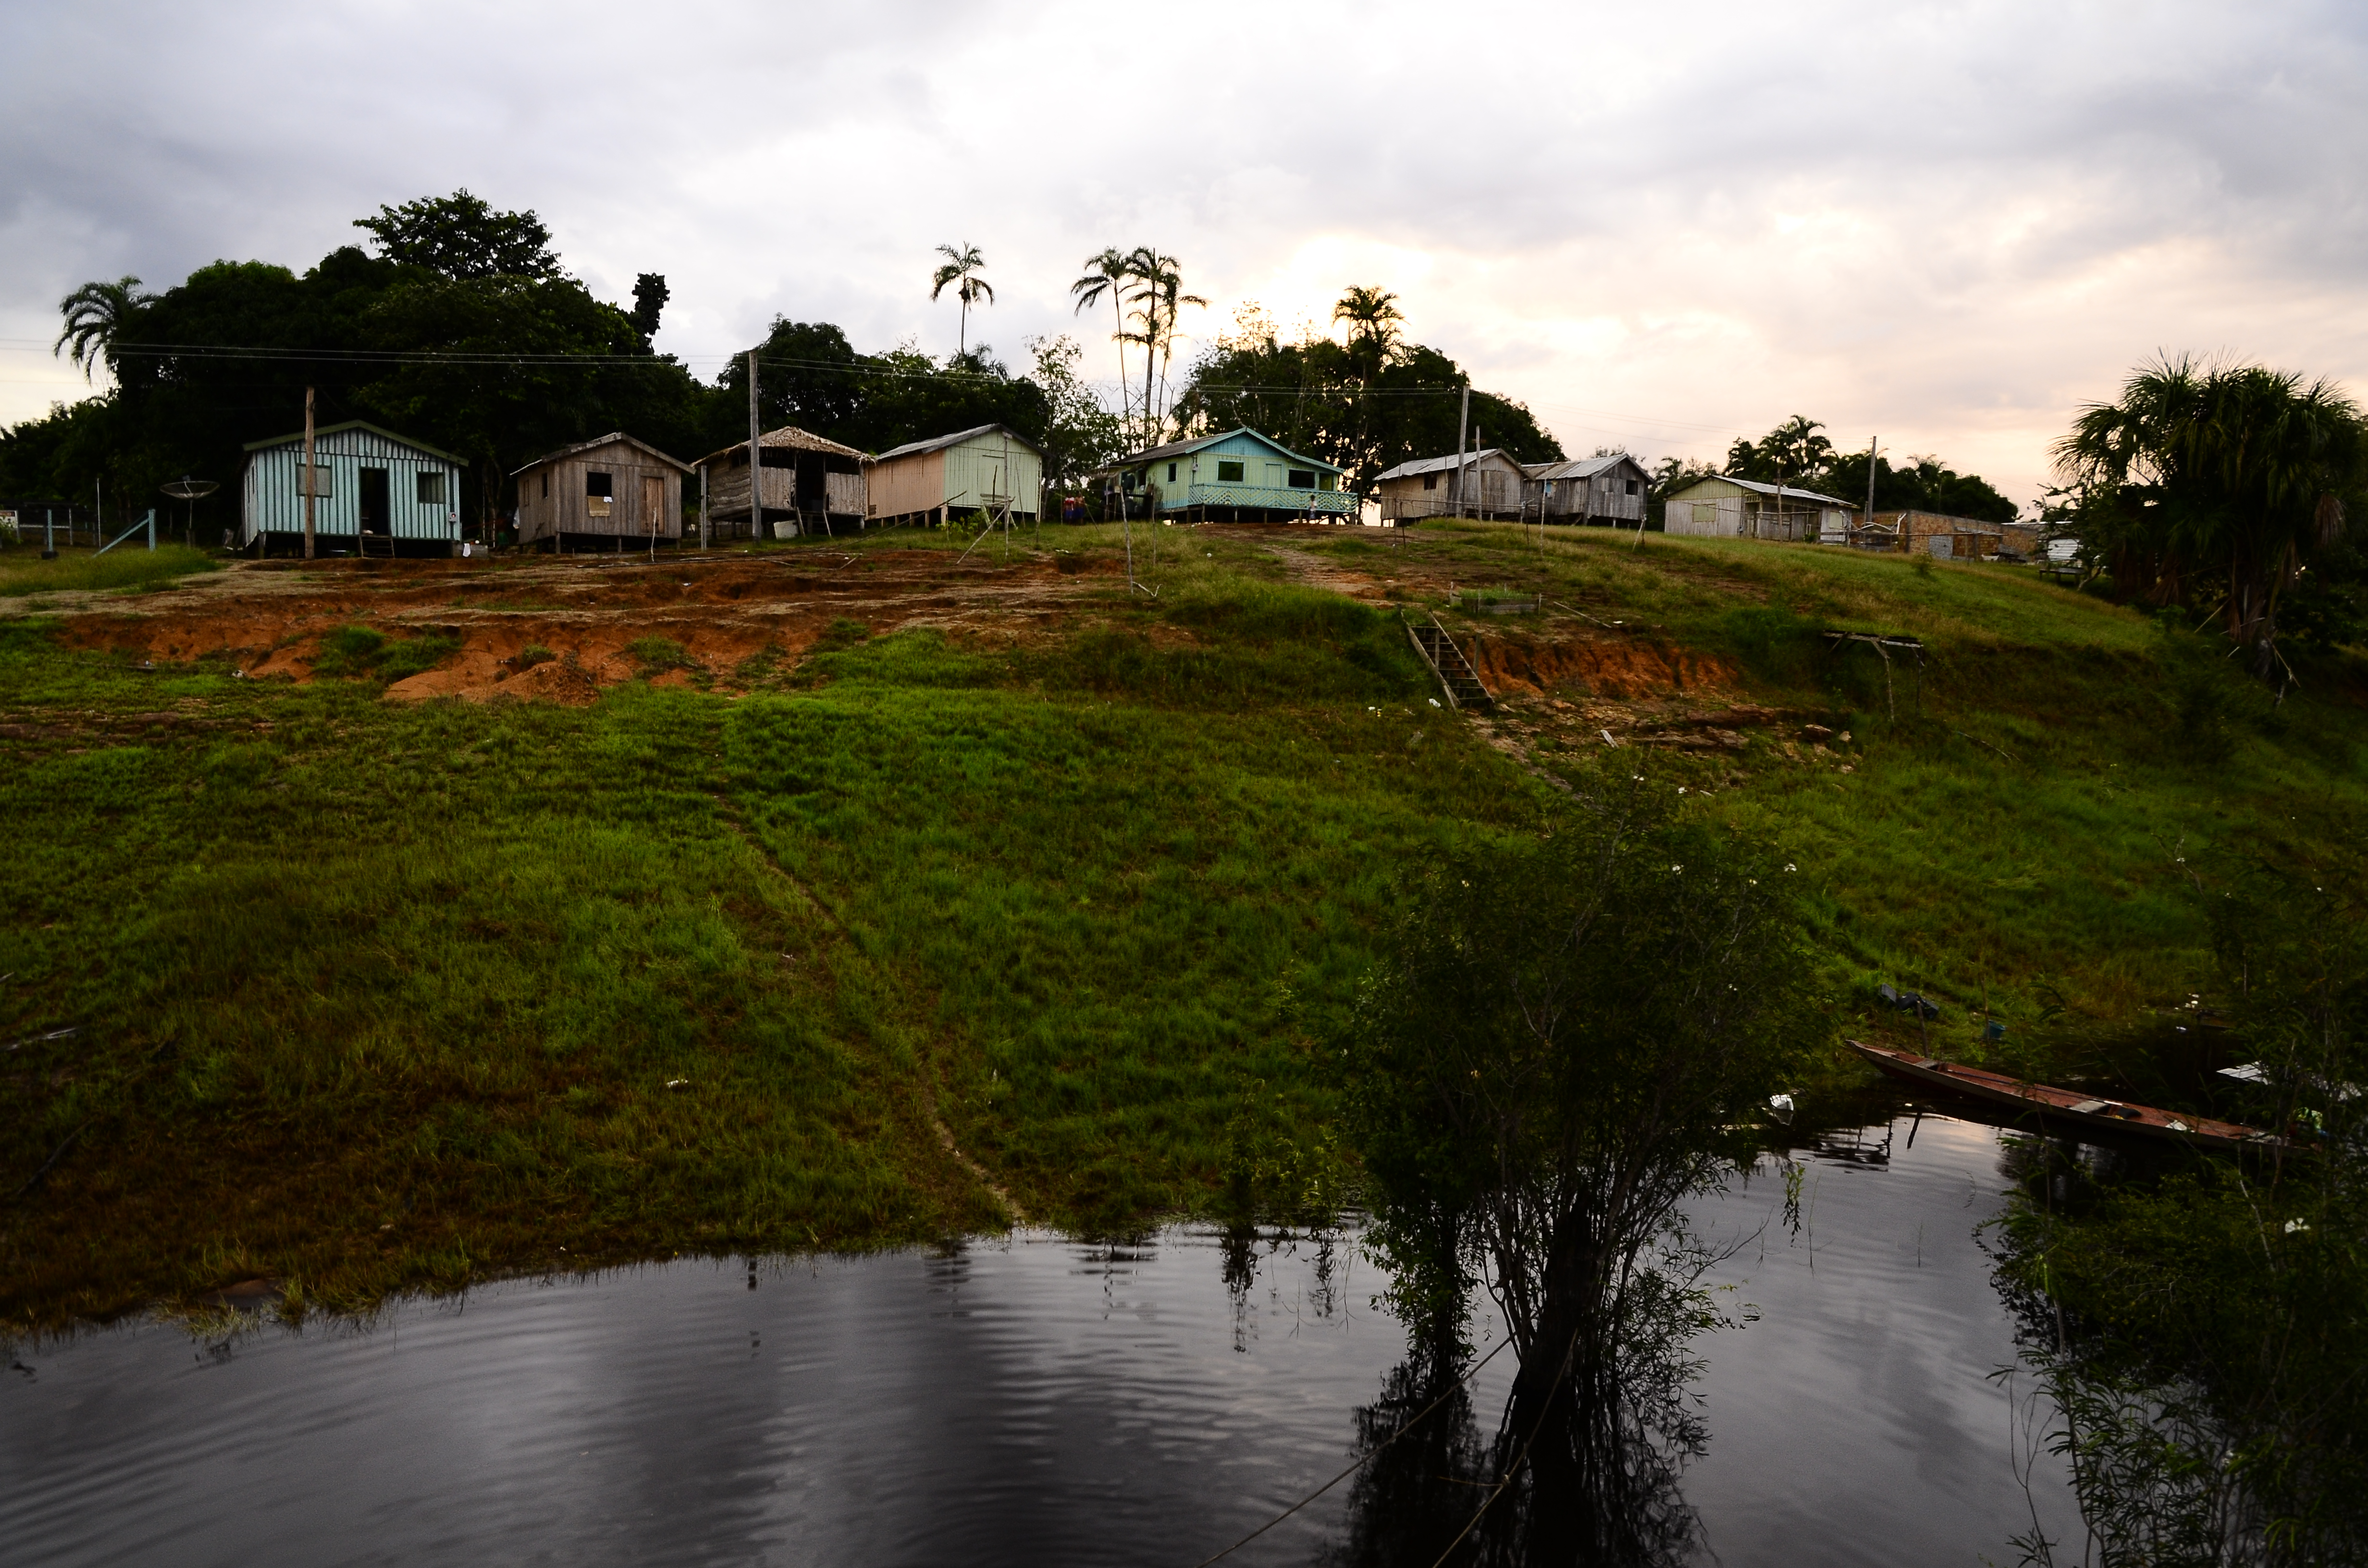 Communities are built on the highland in the Amazon.